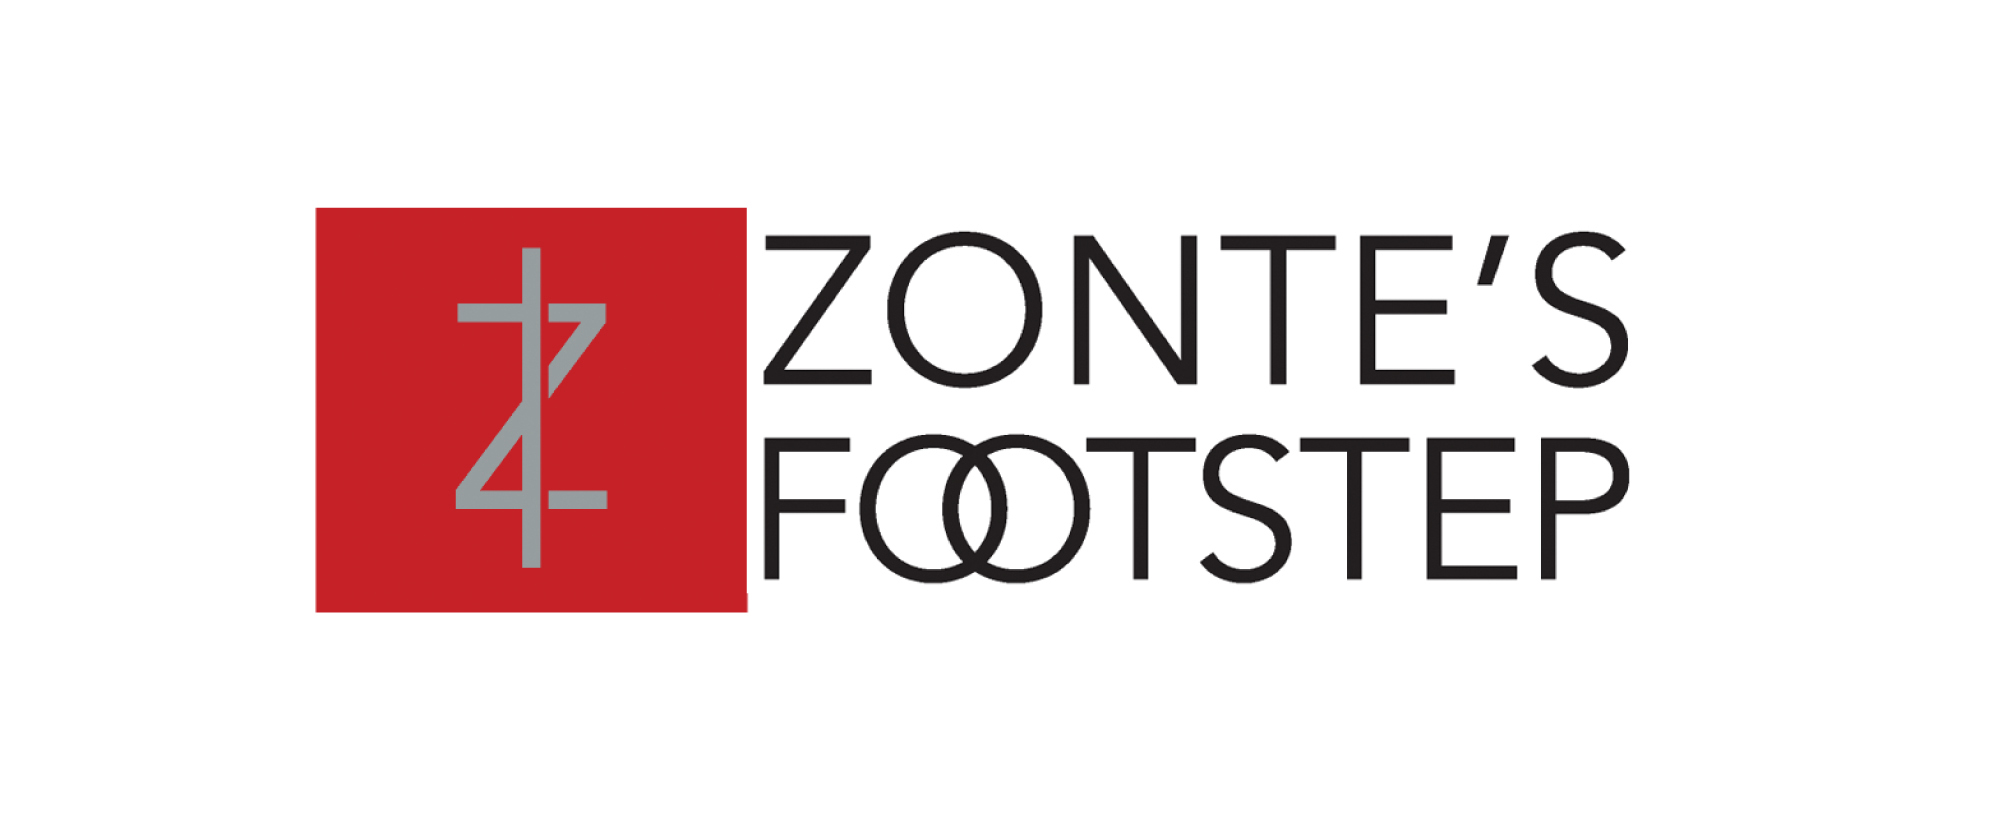 Zontes_Footstep_Wines.jpg